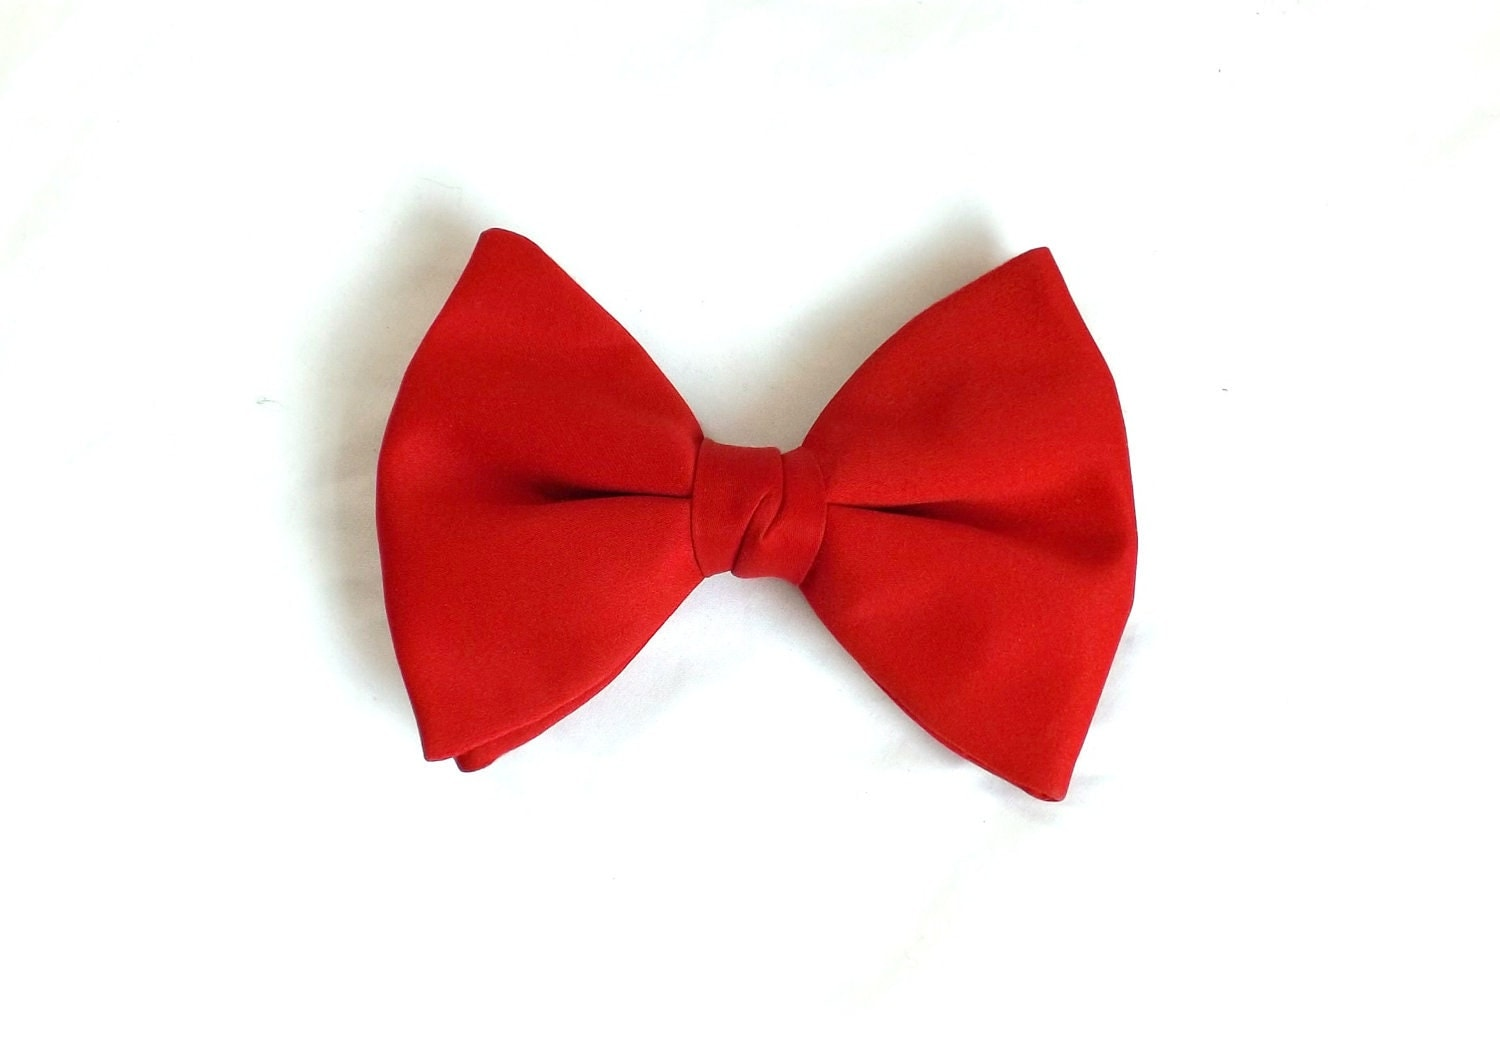 You searched for: red bow tie clip on! Etsy is the home to thousands of handmade, vintage, and one-of-a-kind products and gifts related to your search. No matter what you're looking for or where you are in the world, our global marketplace of sellers can help you find unique and affordable options. Let's get started!